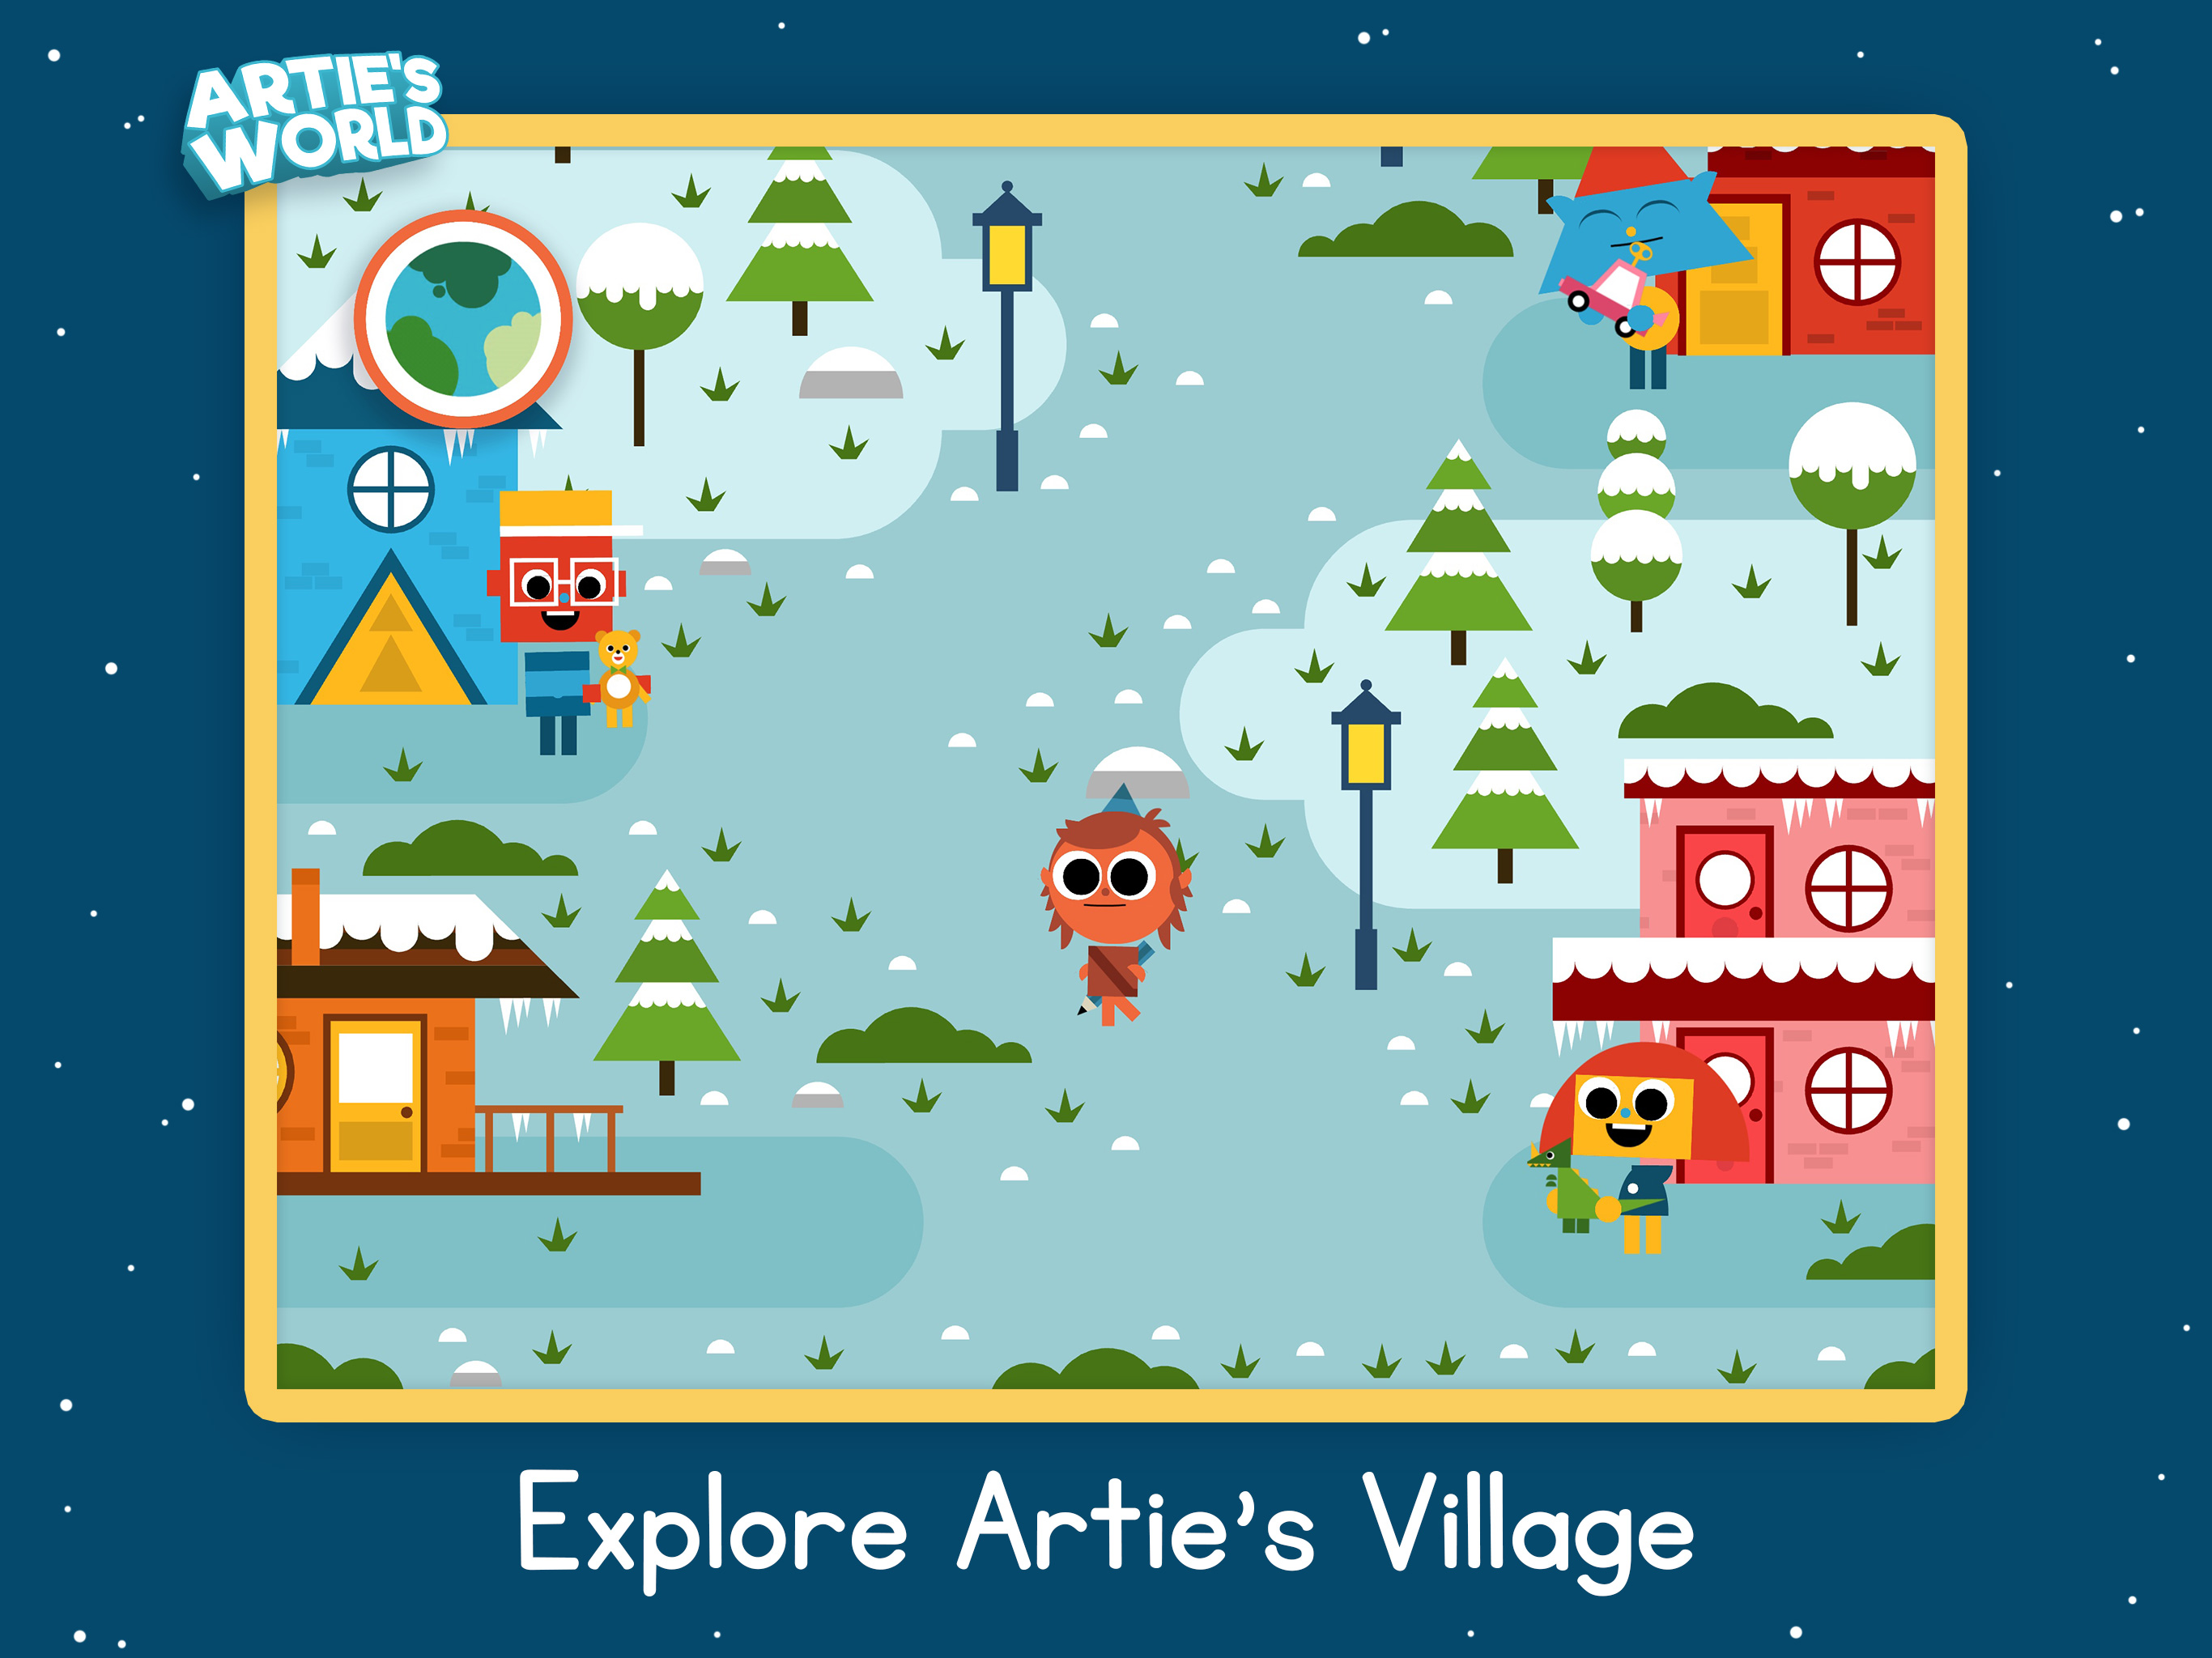 Artie's Village in Artie's World